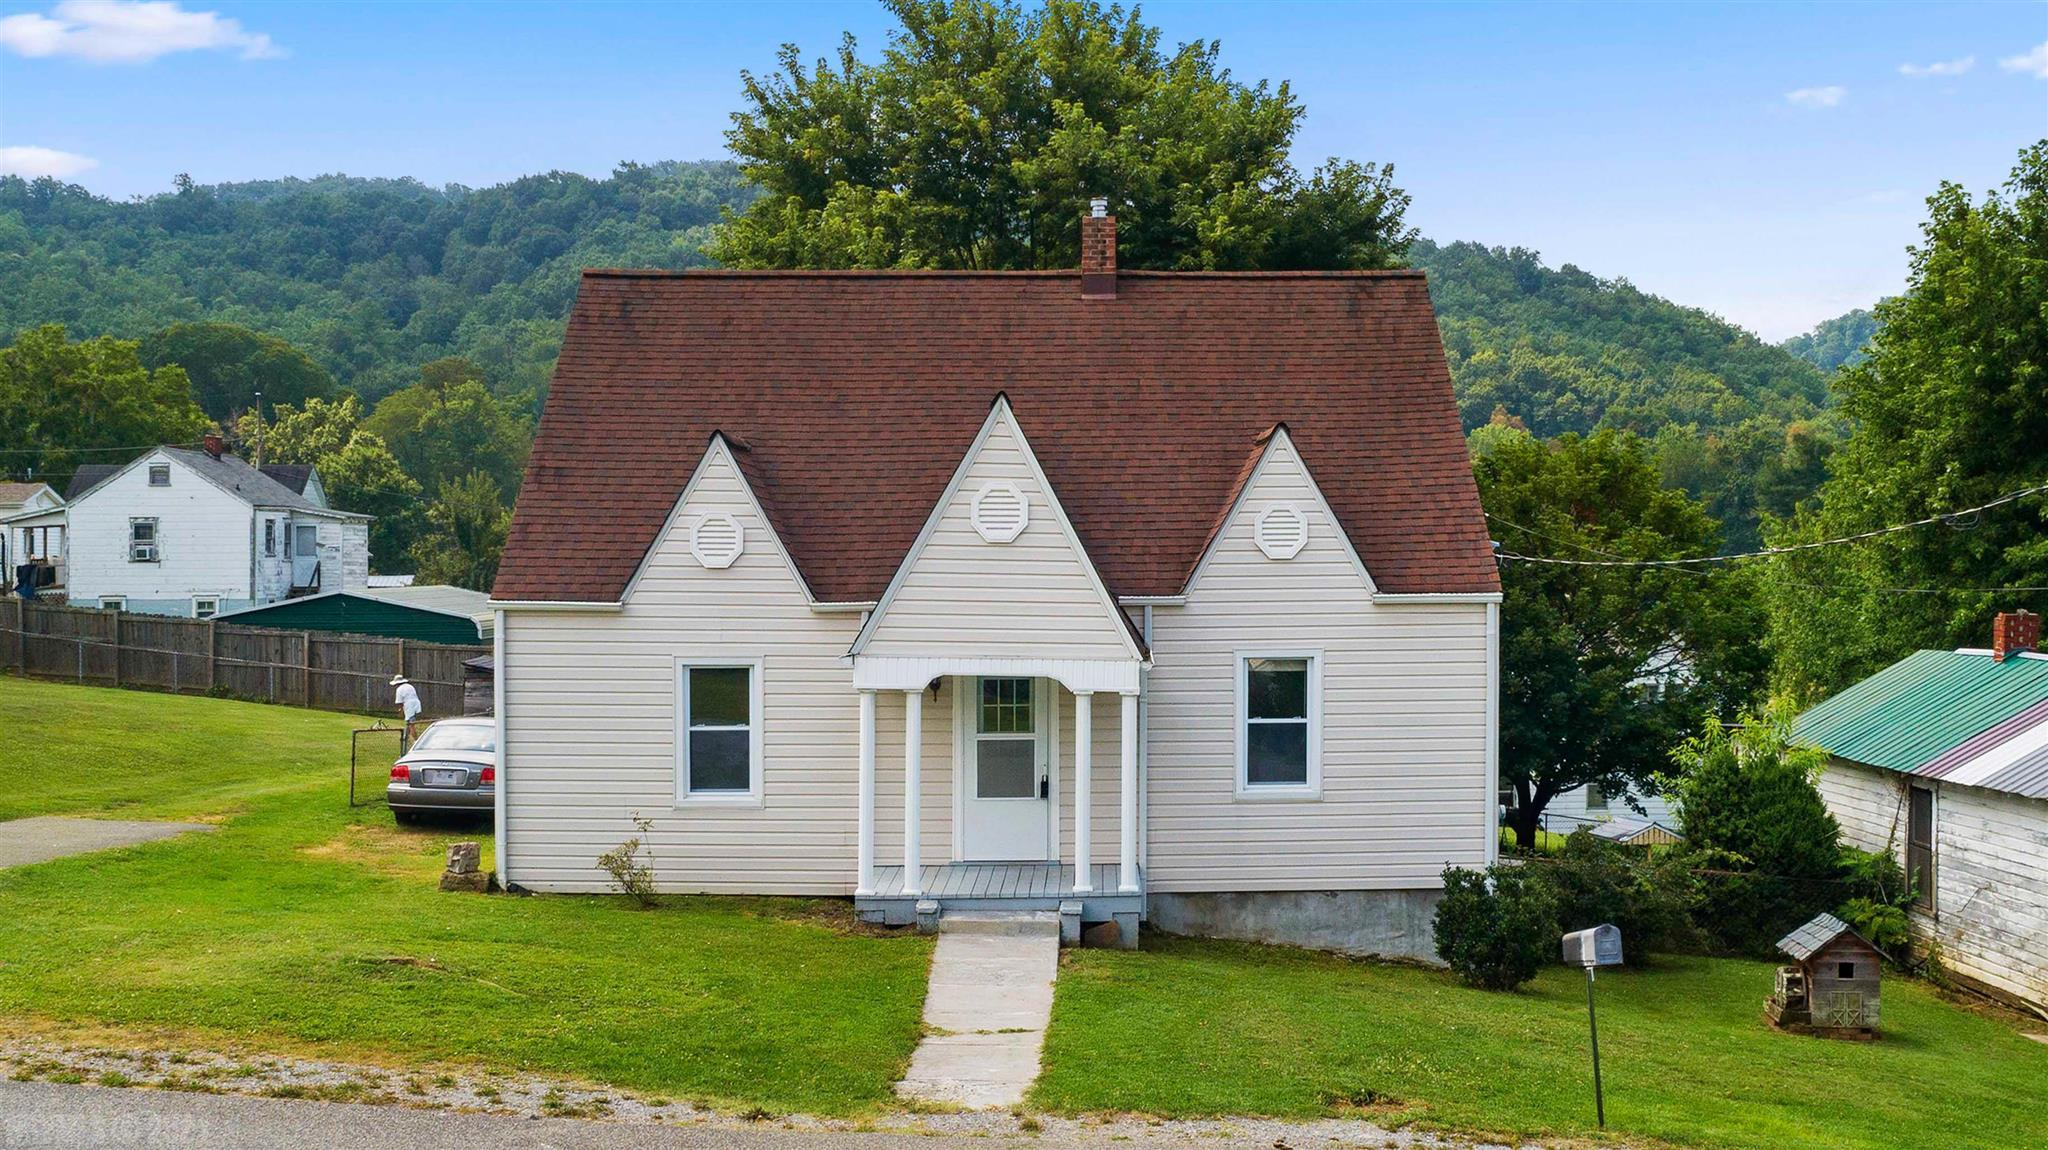 NEW Vinyl Siding-1999, NEW Shingle Roof & NEW Hot Water Heater - approx. 2015, NEW Replacement Vinyl Windows-2015, NEW Extra Insulation-2015, NEW Storm Door-2015, Public water line has been replaced. NEW Metal Roof-Storage Bldg which is 55.75 x 14. Large Home w/3 BR, 1 Bath, LR, Kitchen, DR, Hall, & Laundry in 1,221 SF on the Main Level w/Hardwood Floors. Pull down stairs to attic & check about the possibility of putting permanent stairs to Attic w/1,221 SF & plenty of Room to put 2 Bedrooms & Full Bath. Partial Basement has 4 rooms & sump pump. LARGE Level Corner YARD of est. .55 acre. PLUS  Rear Yard is fenced &  Plenty of Room for Garden. Excellent location on corner lot. Front Porch & L-Shaped Rear Deck are covered. Basement Access off Laundry & Outside entrance also.  Heat - Hot Water Natural Gas. Sold as is where is. Seller will not pay for any repairs or Termite Inspection. Buyer can do Home Inspection & Radon for his information. Upper UF SF is Attic.